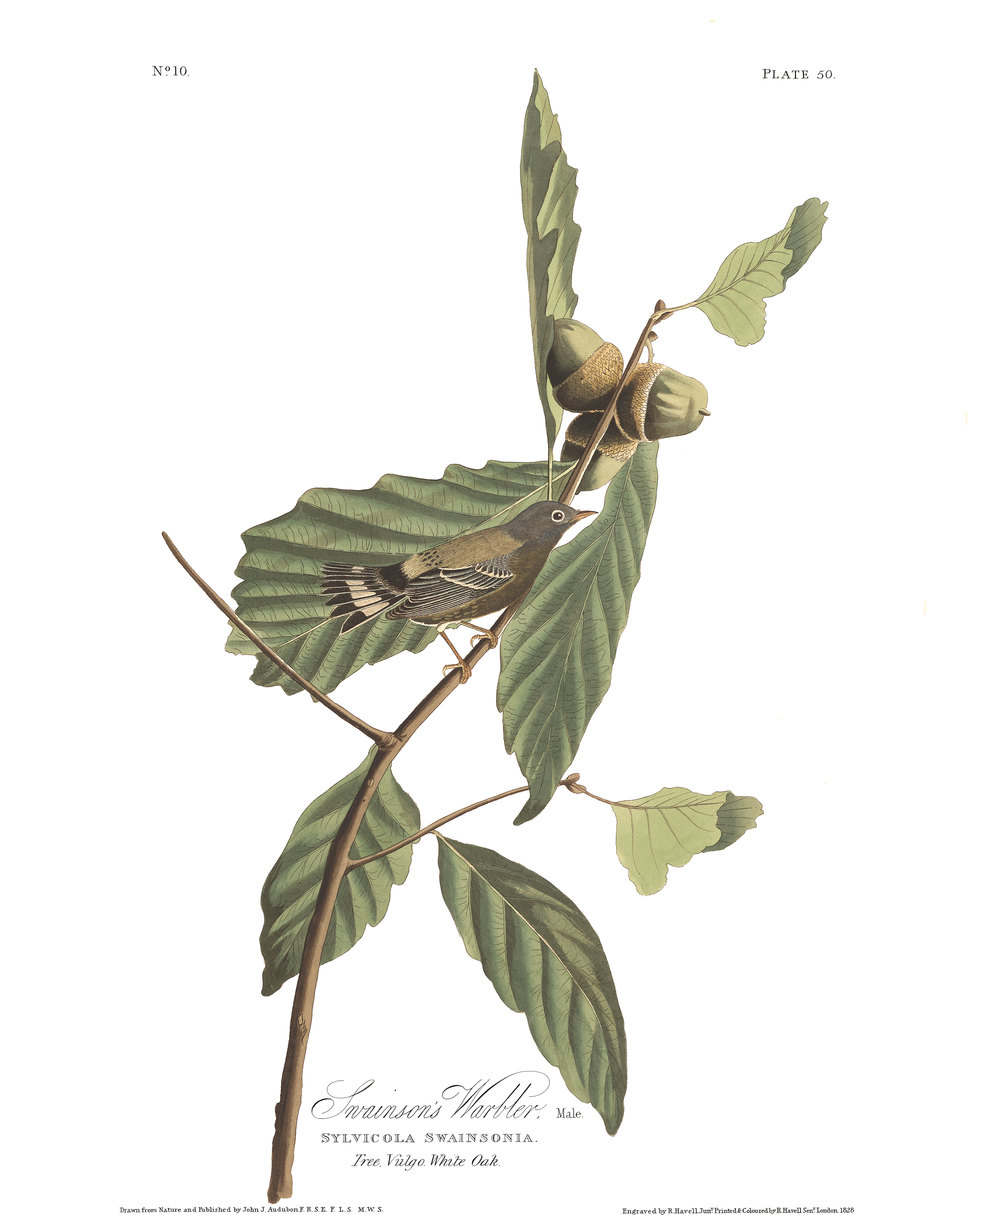 plate 50, Swainson's Warbler